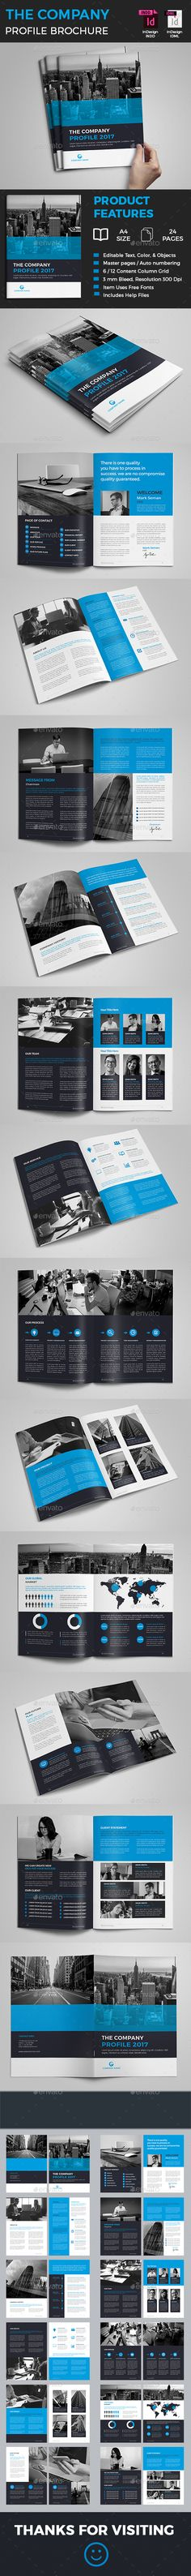 The Company Profile Pinterest Company profile, Brochures and